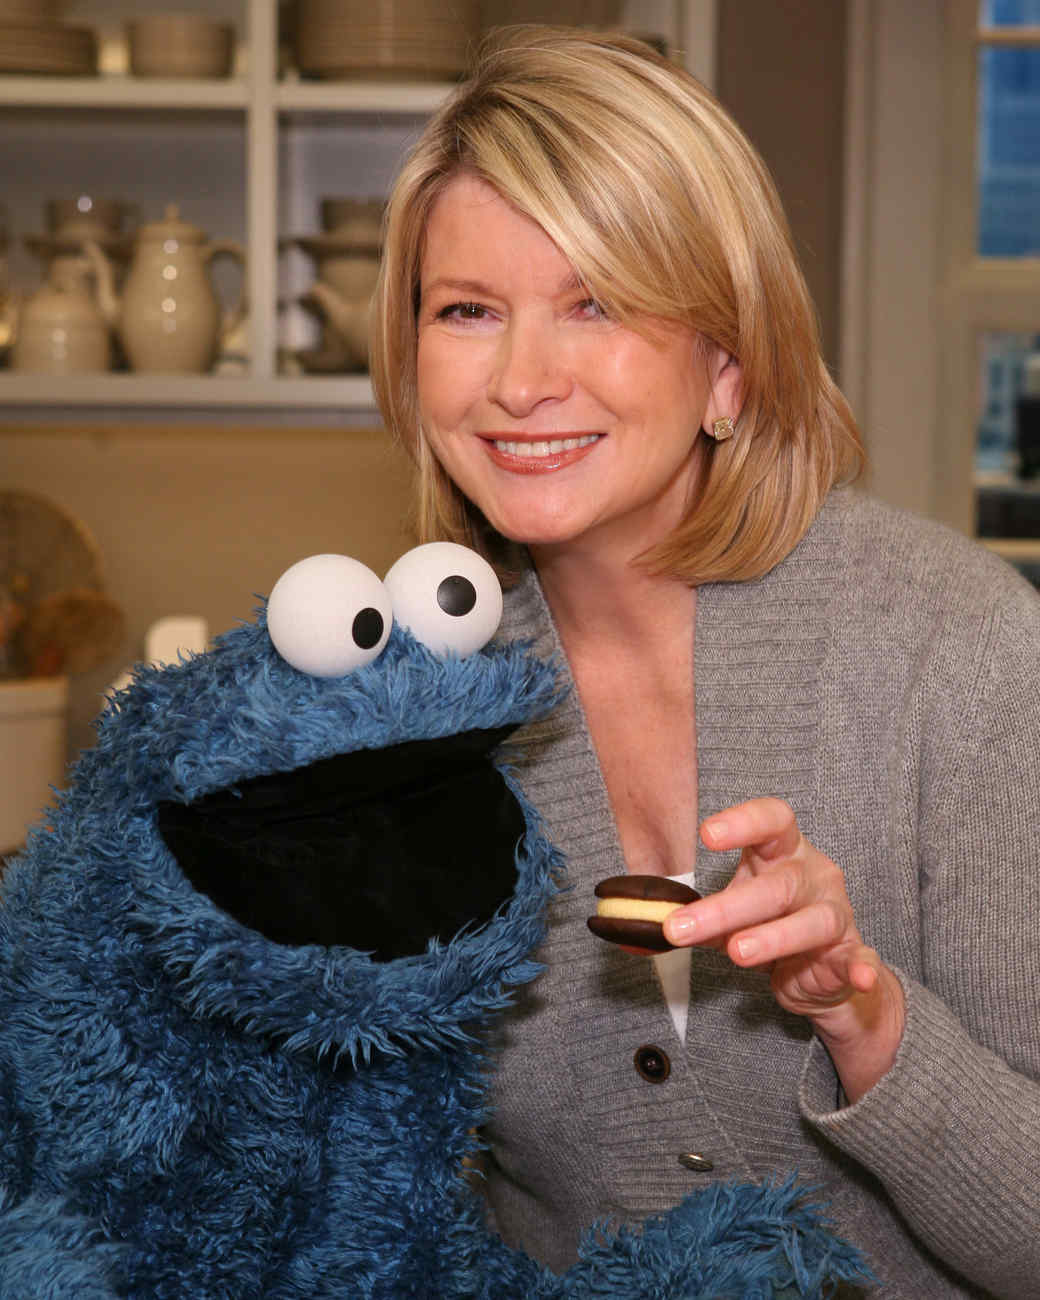 cookie-monster-martha-stewart-img-5549.jpg